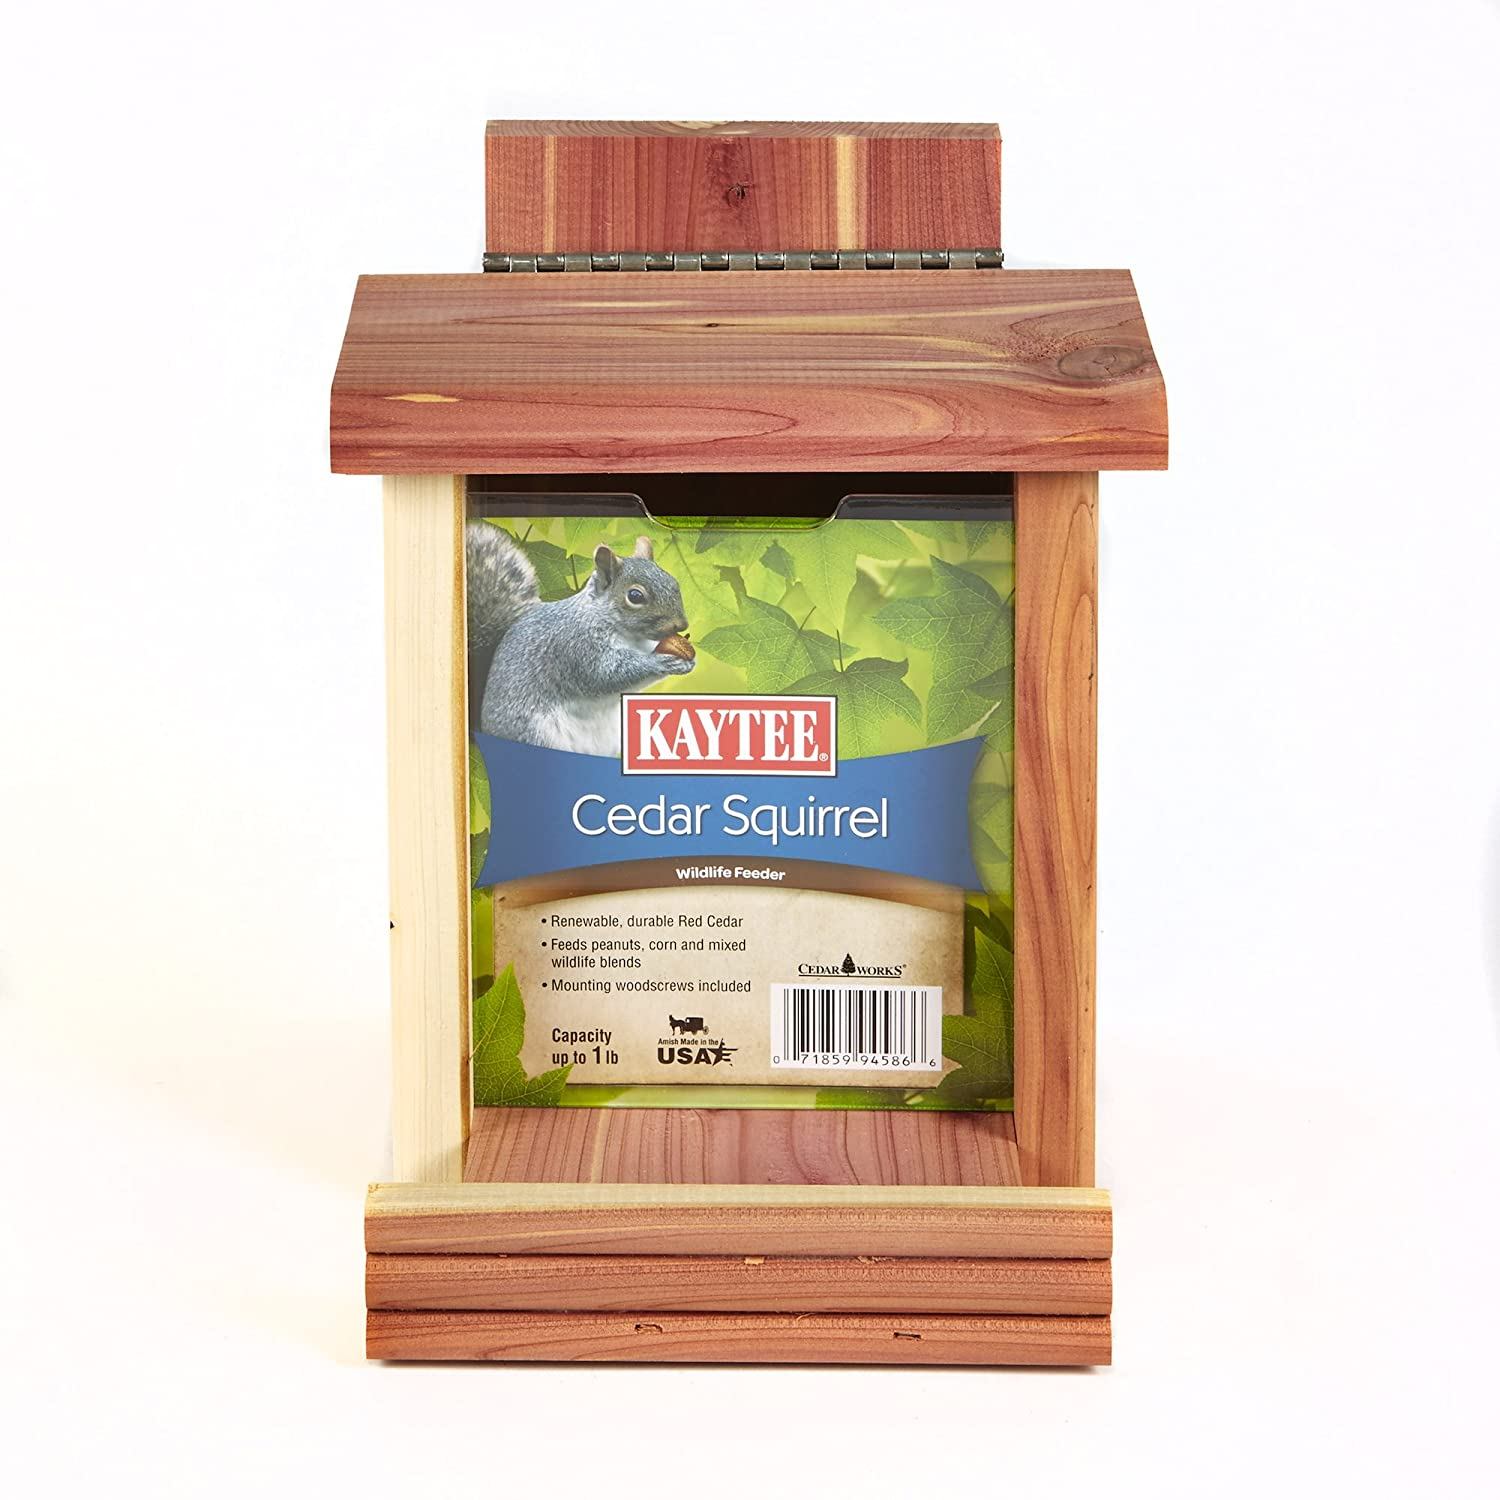 Kaytee Cedar Squirrel Feeder 100506552